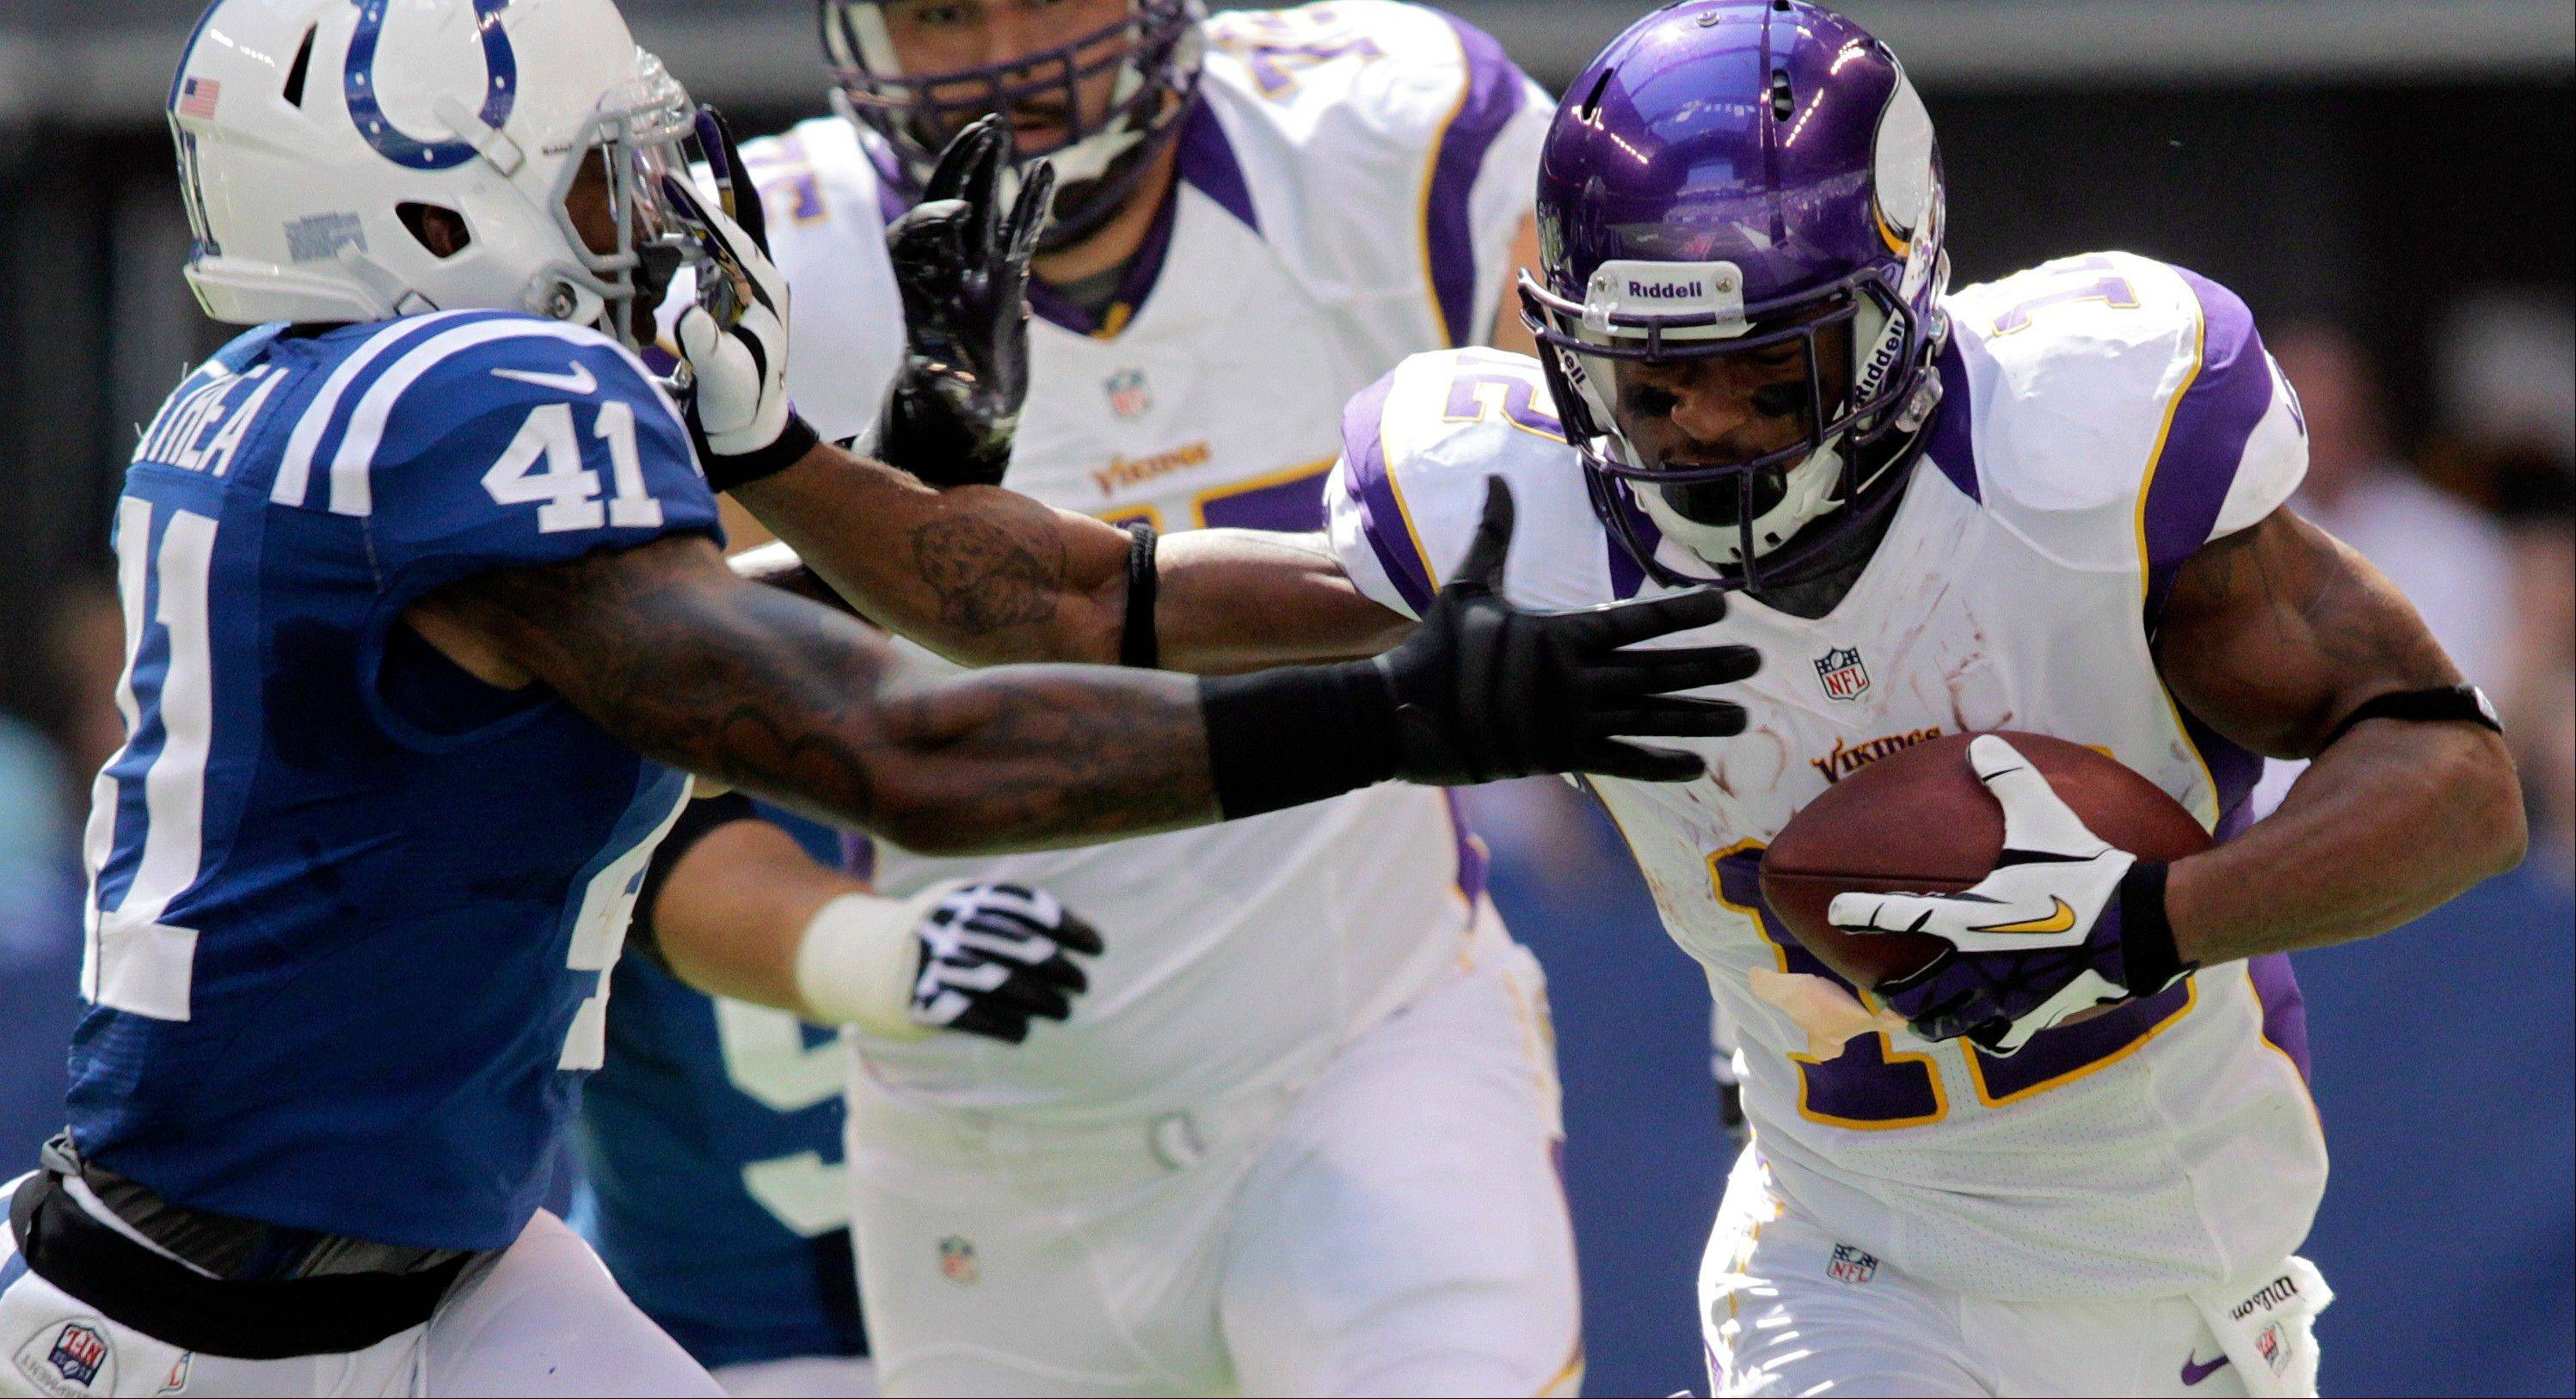 Ankle leaves Vikings WR Harvin doubtful for Bears